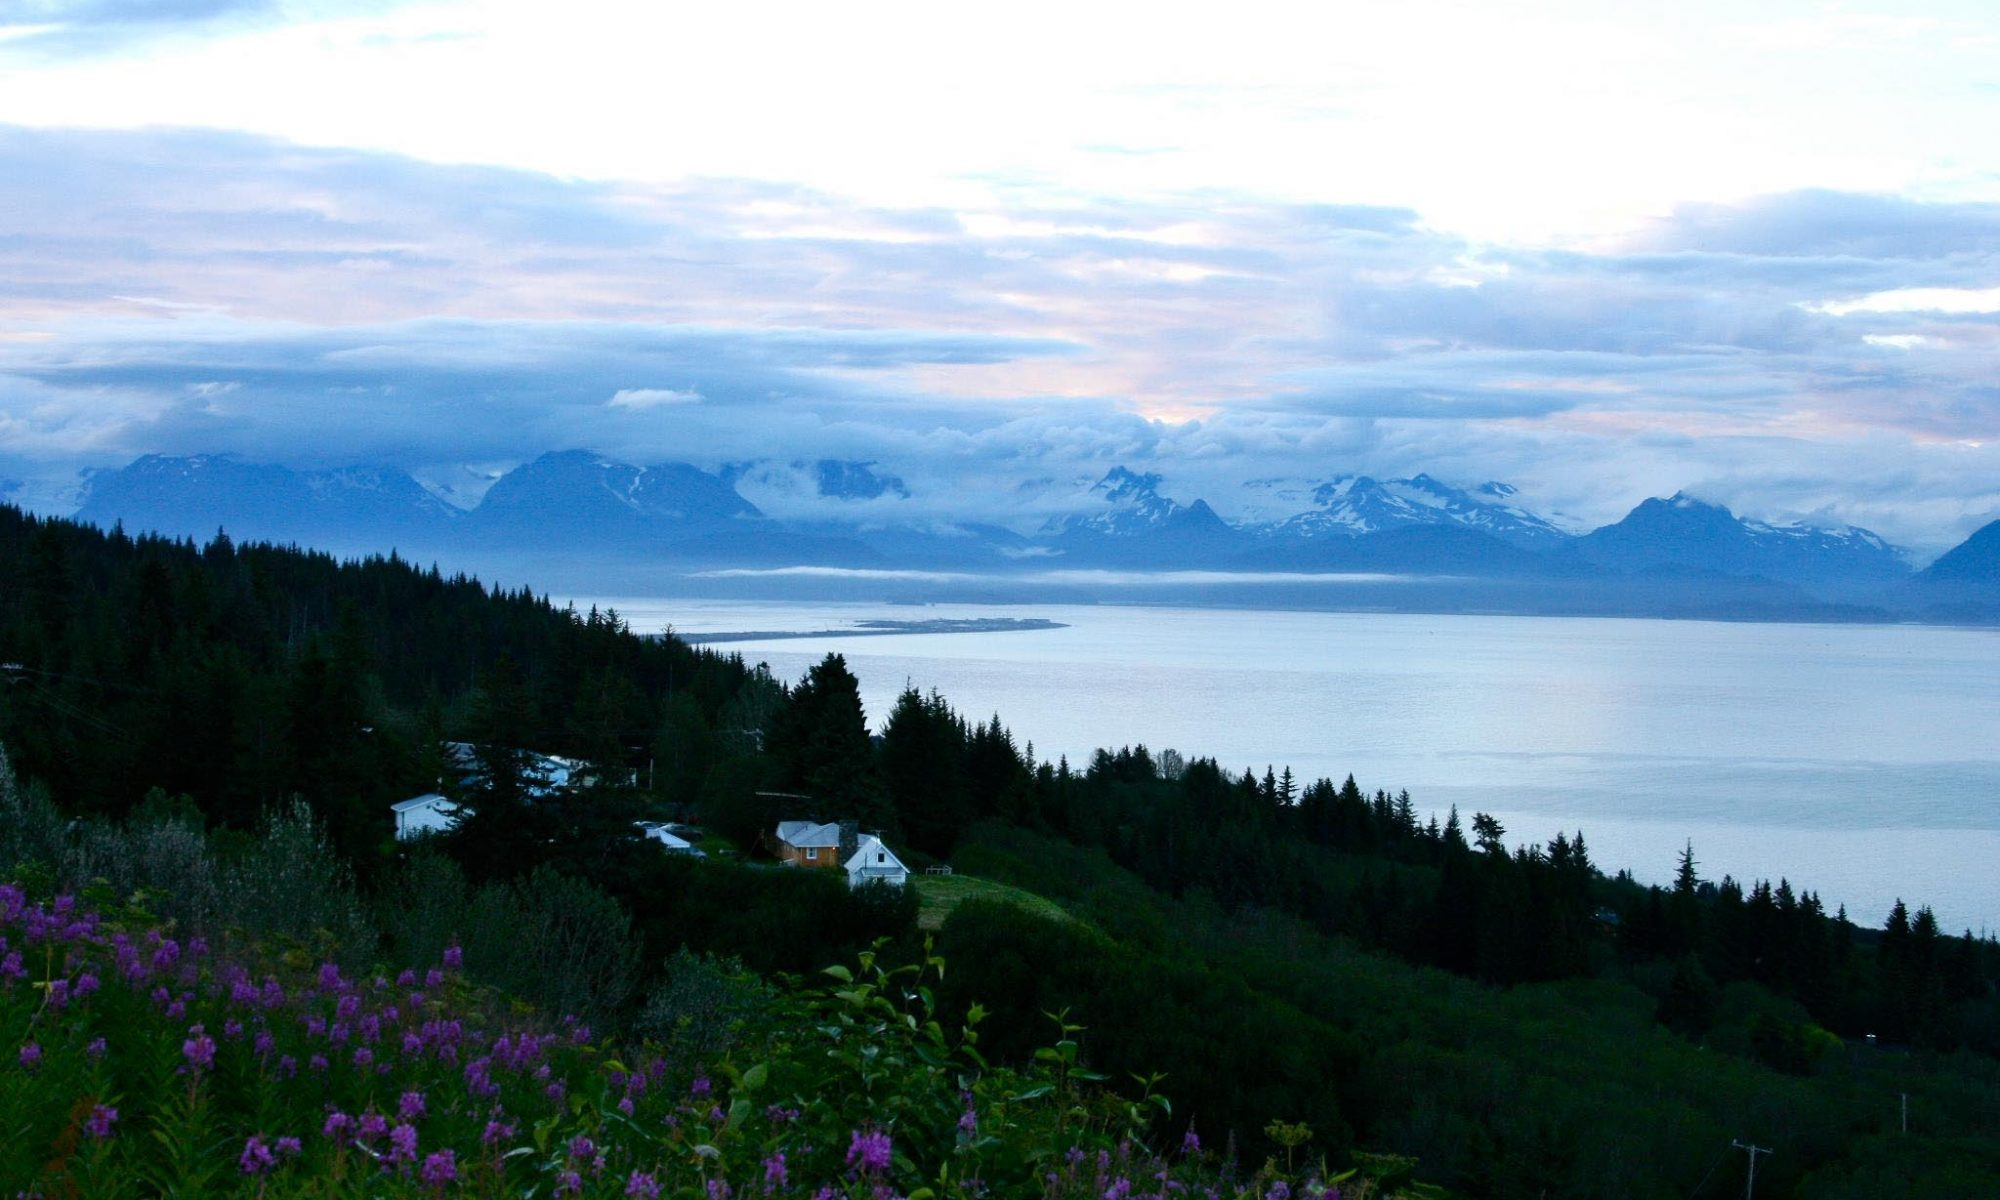 The Homer spit peaking out from flower covered hill